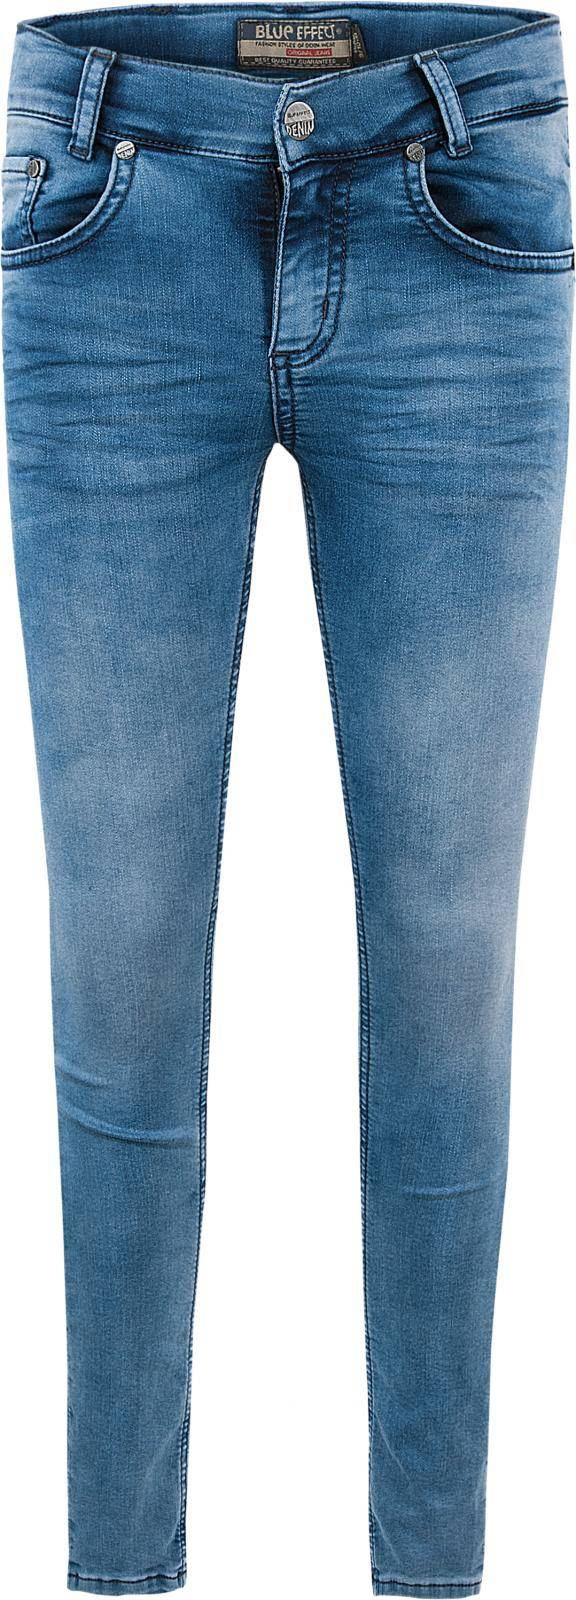 Blue Effect Jeans Superslim